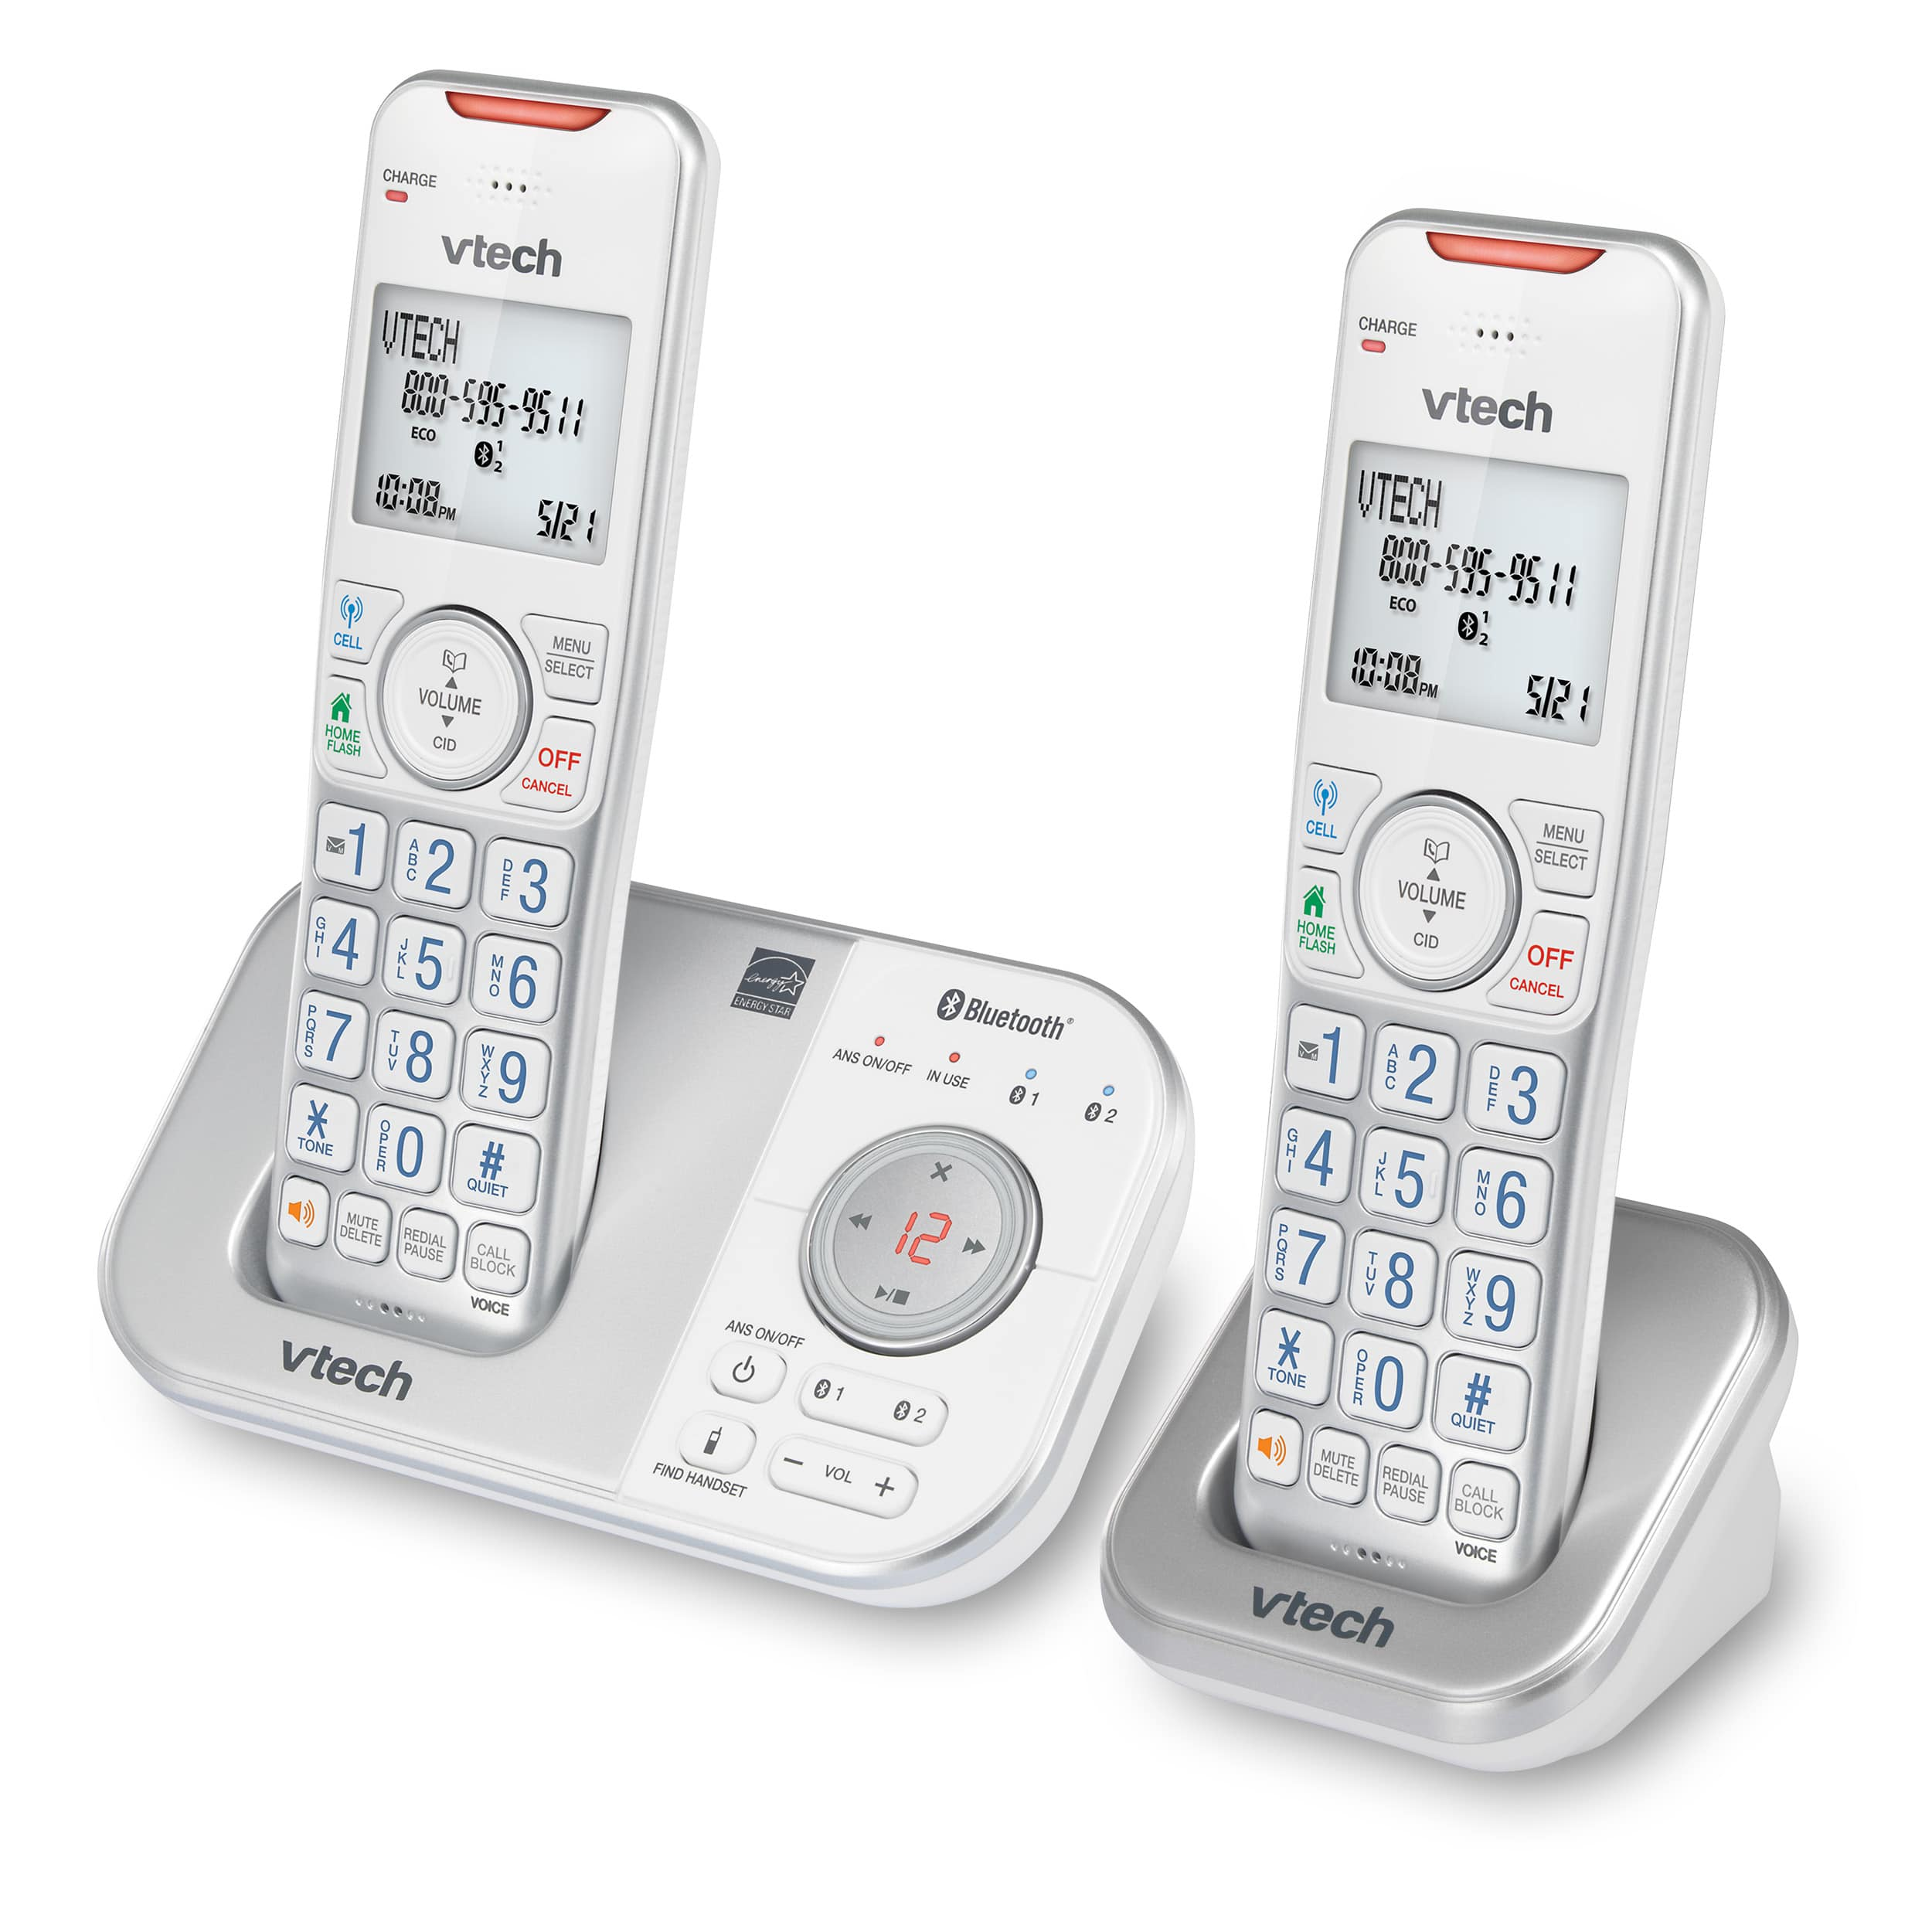 2-Handset Expandable Cordless Phone with Bluetooth Connect to Cell, Smart Call Blocker and Answering System?(Silver & White)